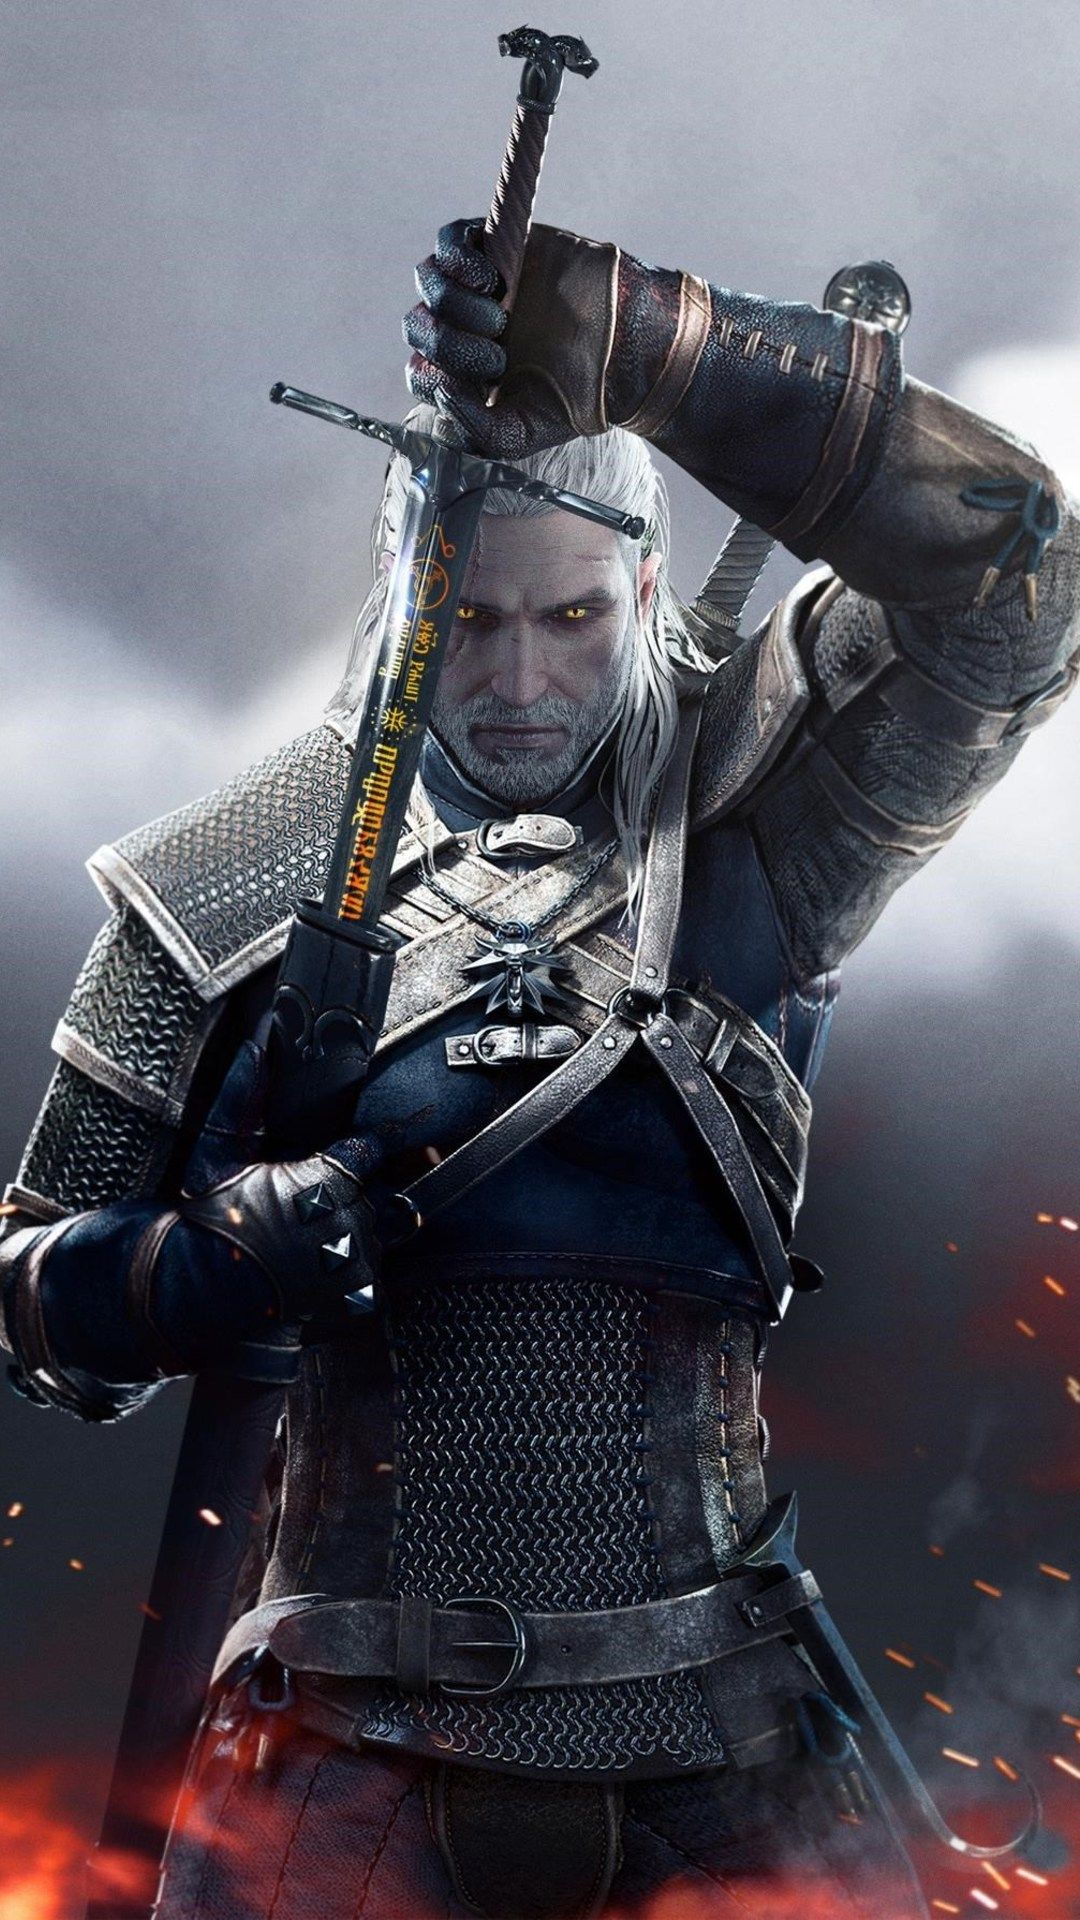 The Witcher 3 Wallpapers Hupages Download Iphone Wallpapers